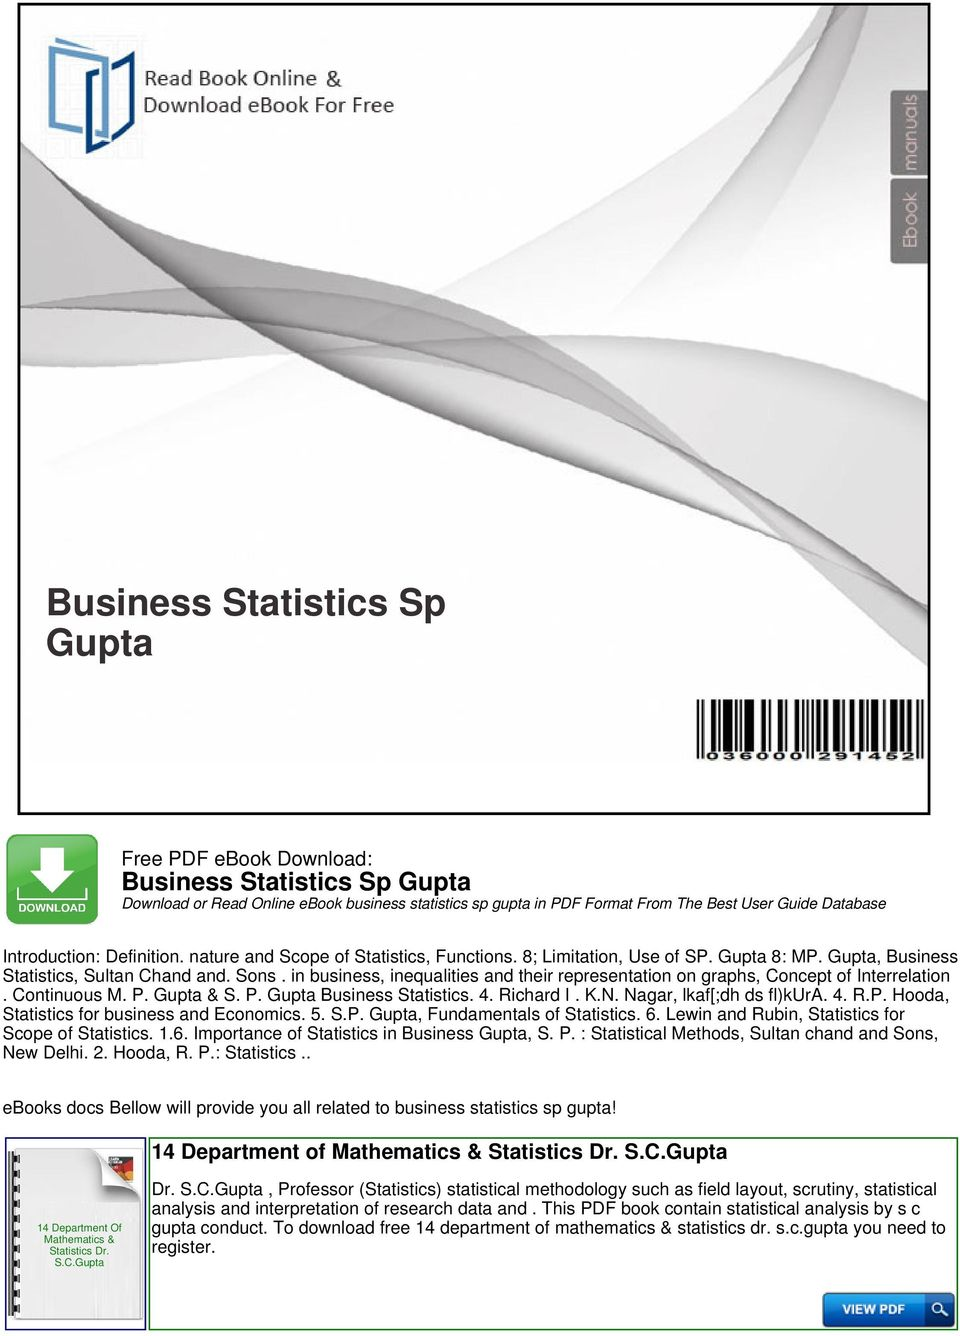 in business, inequalities and their representation on graphs, Concept of Interrelation. Continuous M. P. Gupta & S. P. Gupta. 4. Richard I. K.N. Nagar, lkaf[;dh ds fl)kura. 4. R.P. Hooda, Statistics for business and Economics.